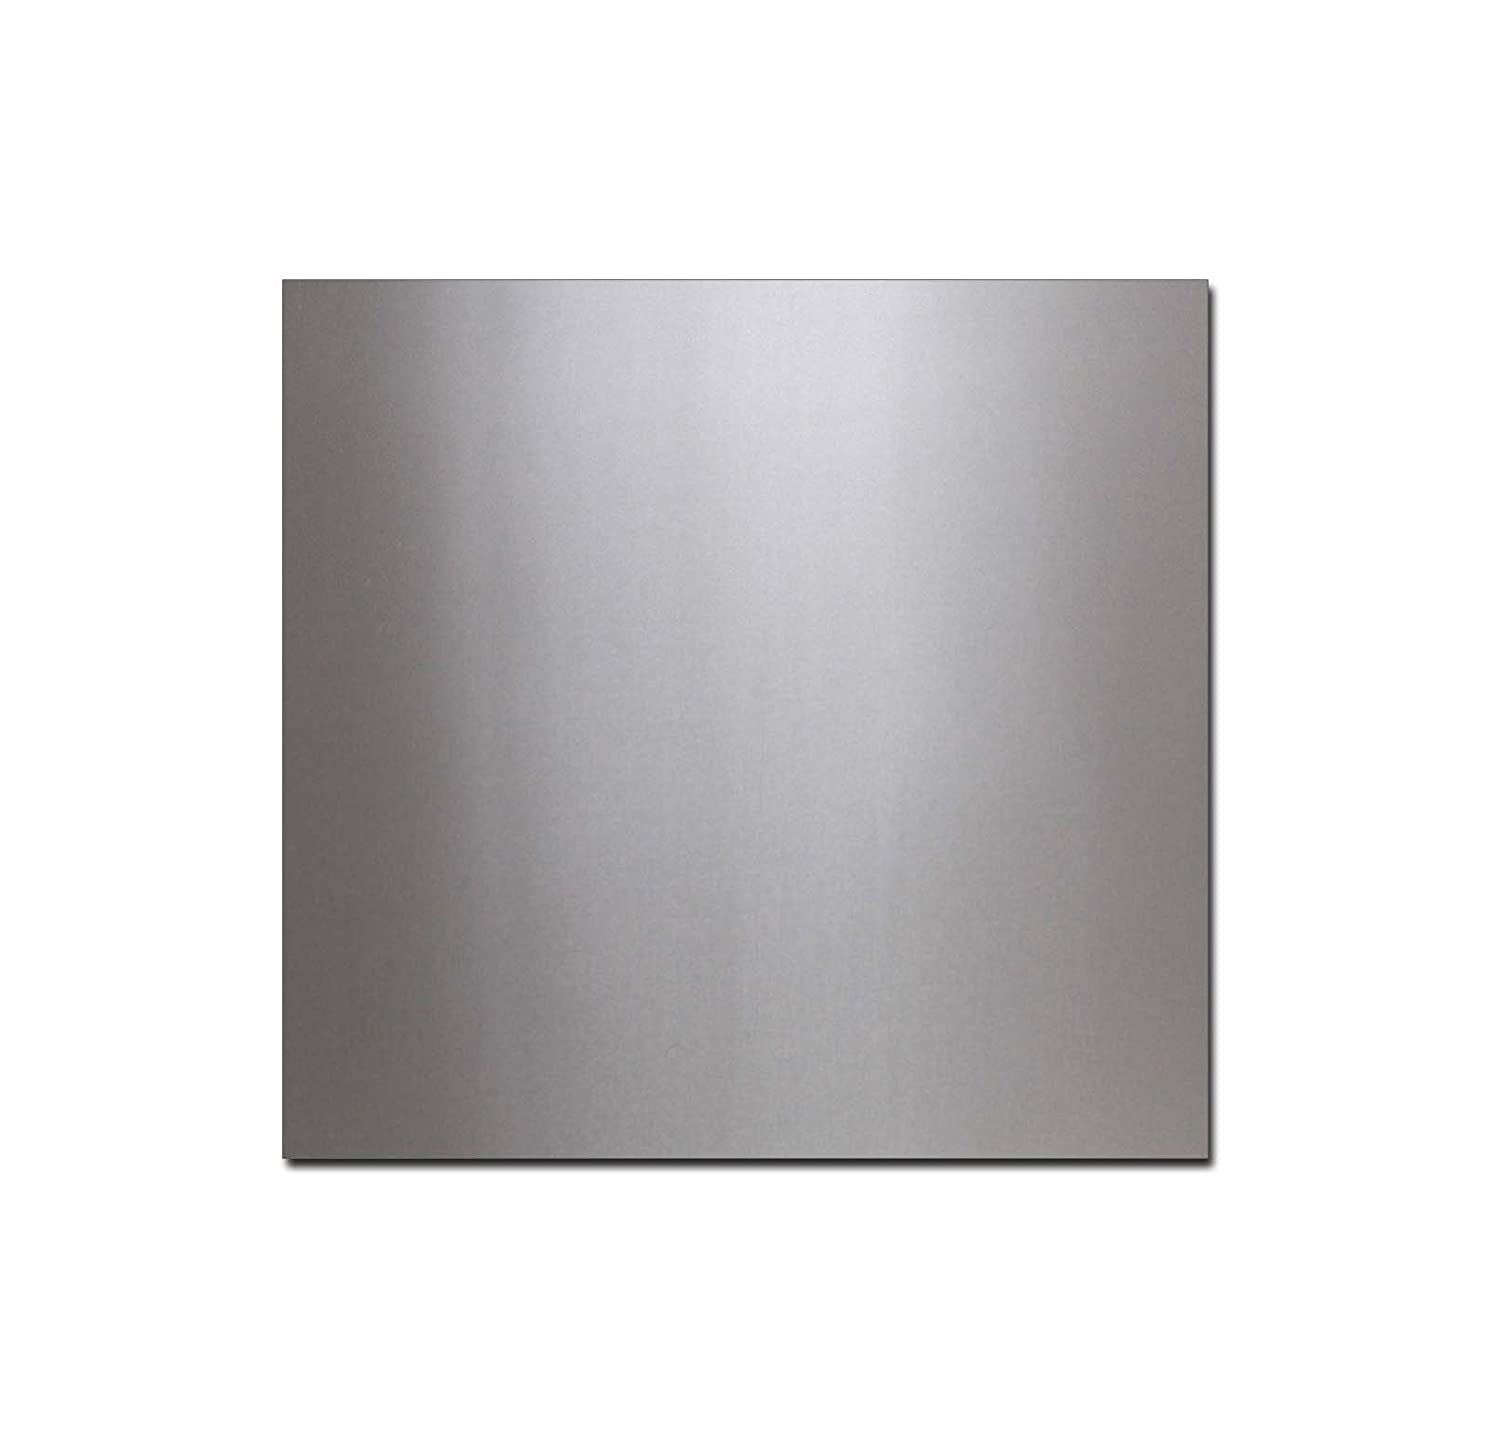 KOBE SSP30 30-Inch Stainless Steel Backsplash Panel